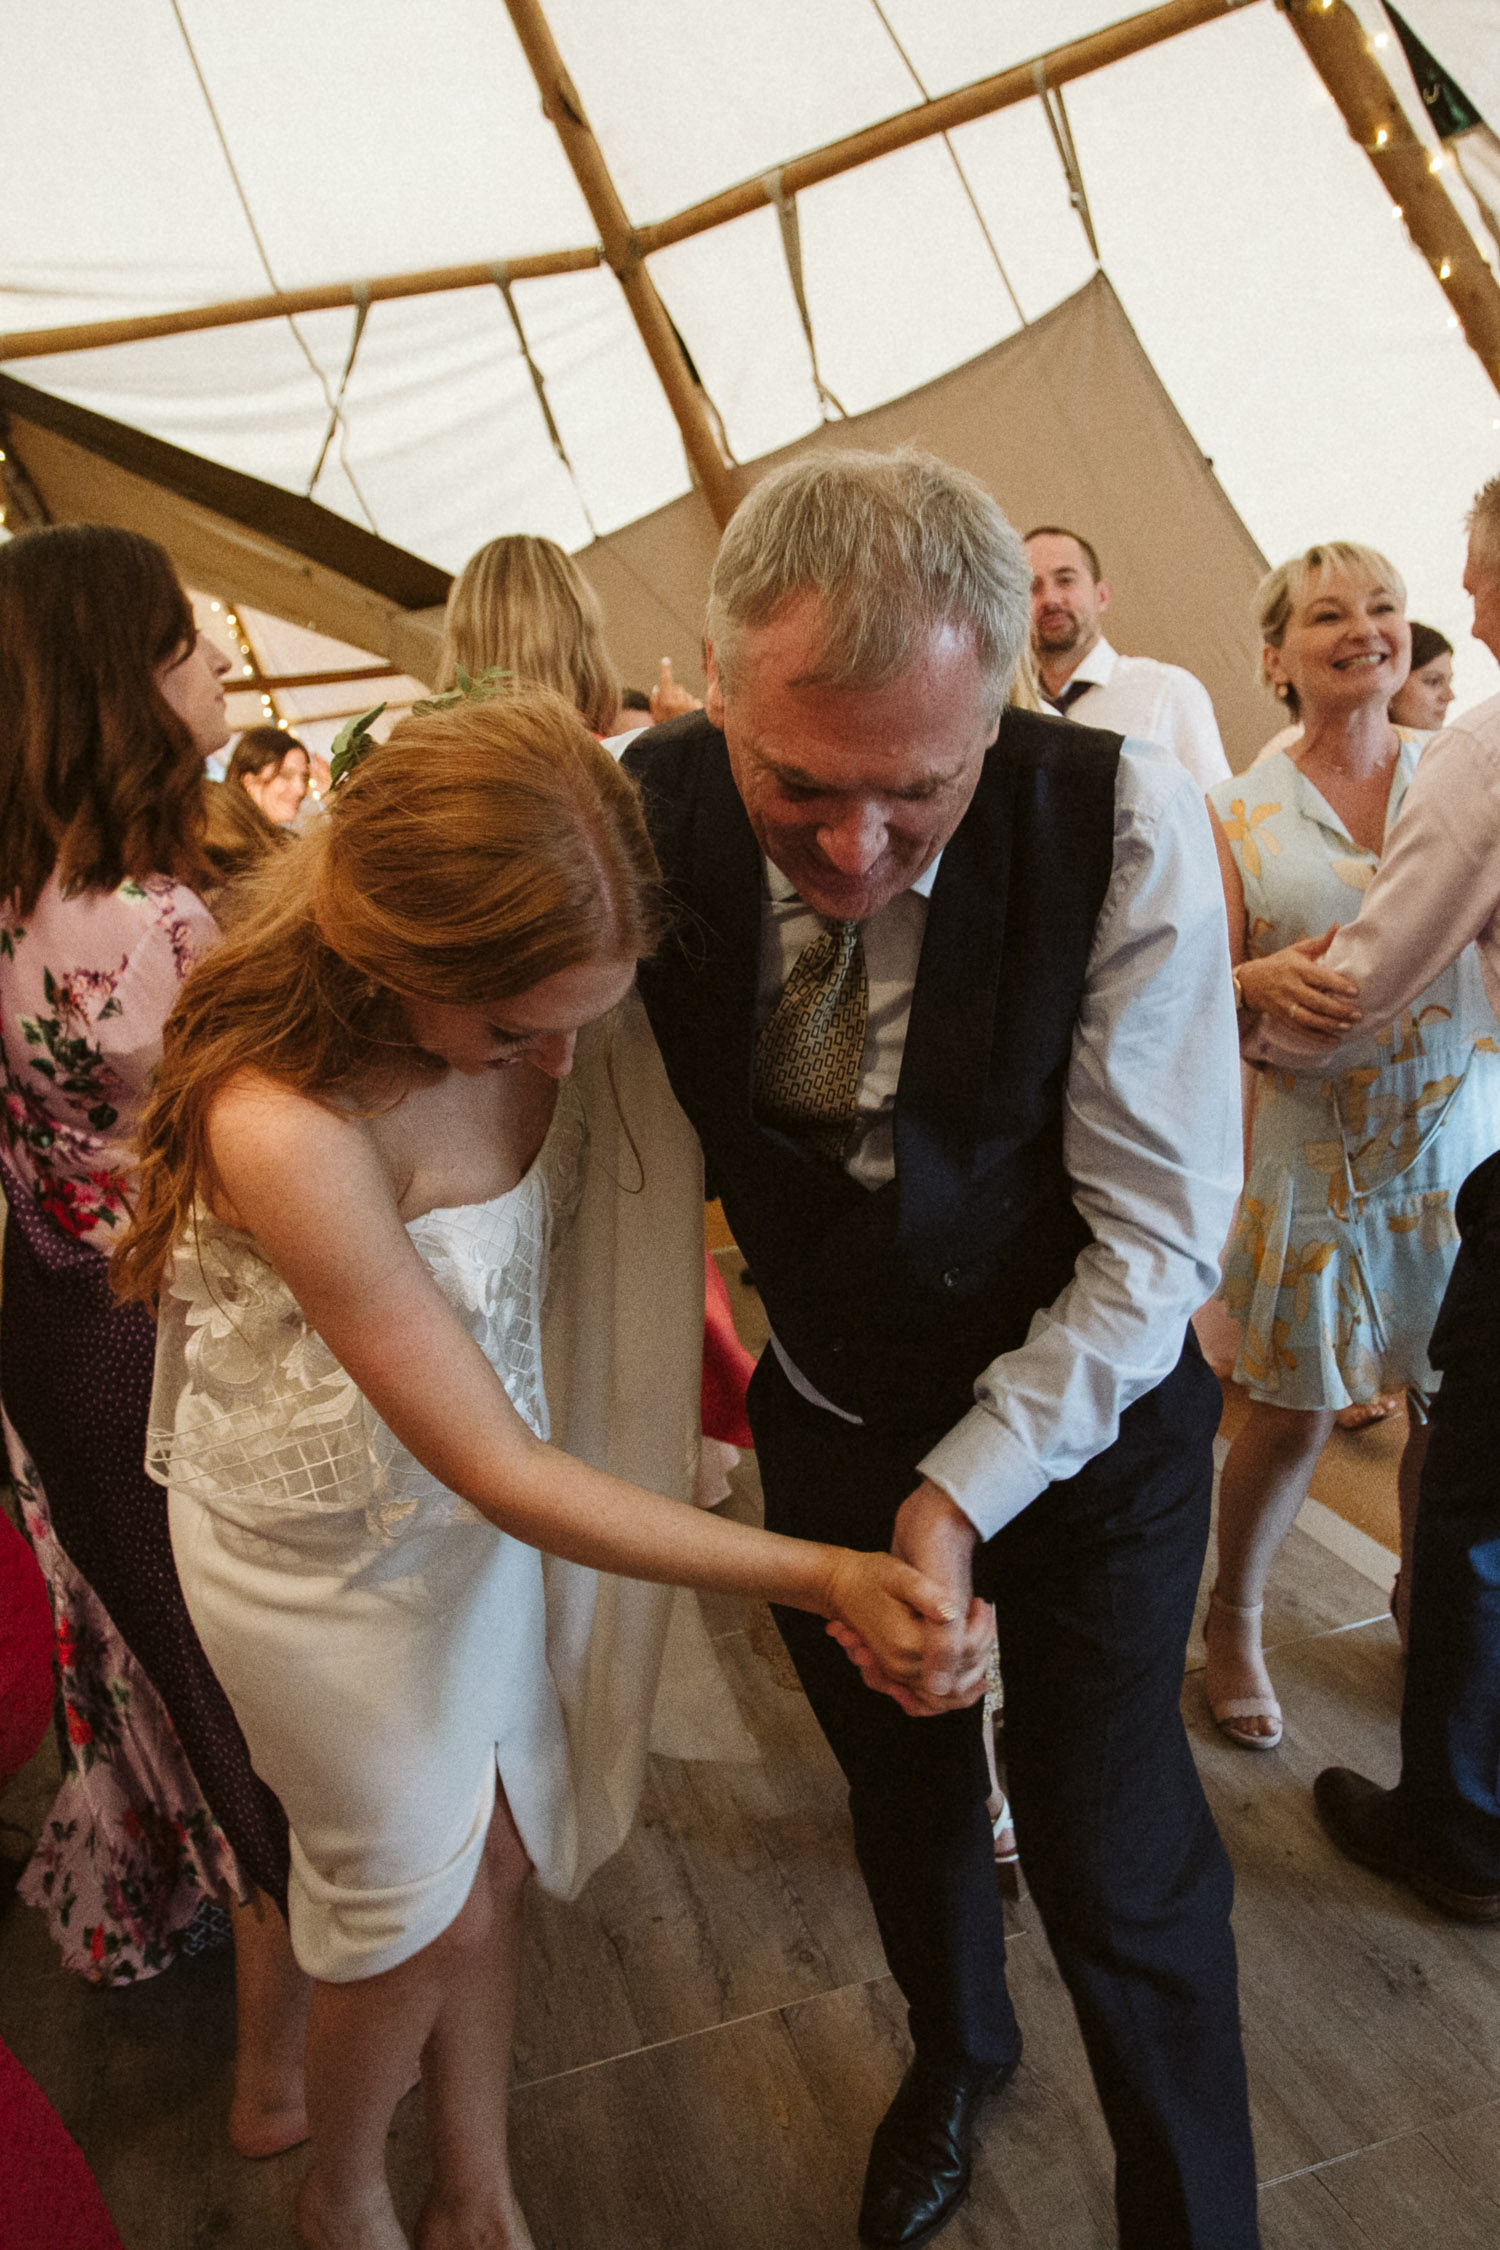 the father and bride are dancing together now